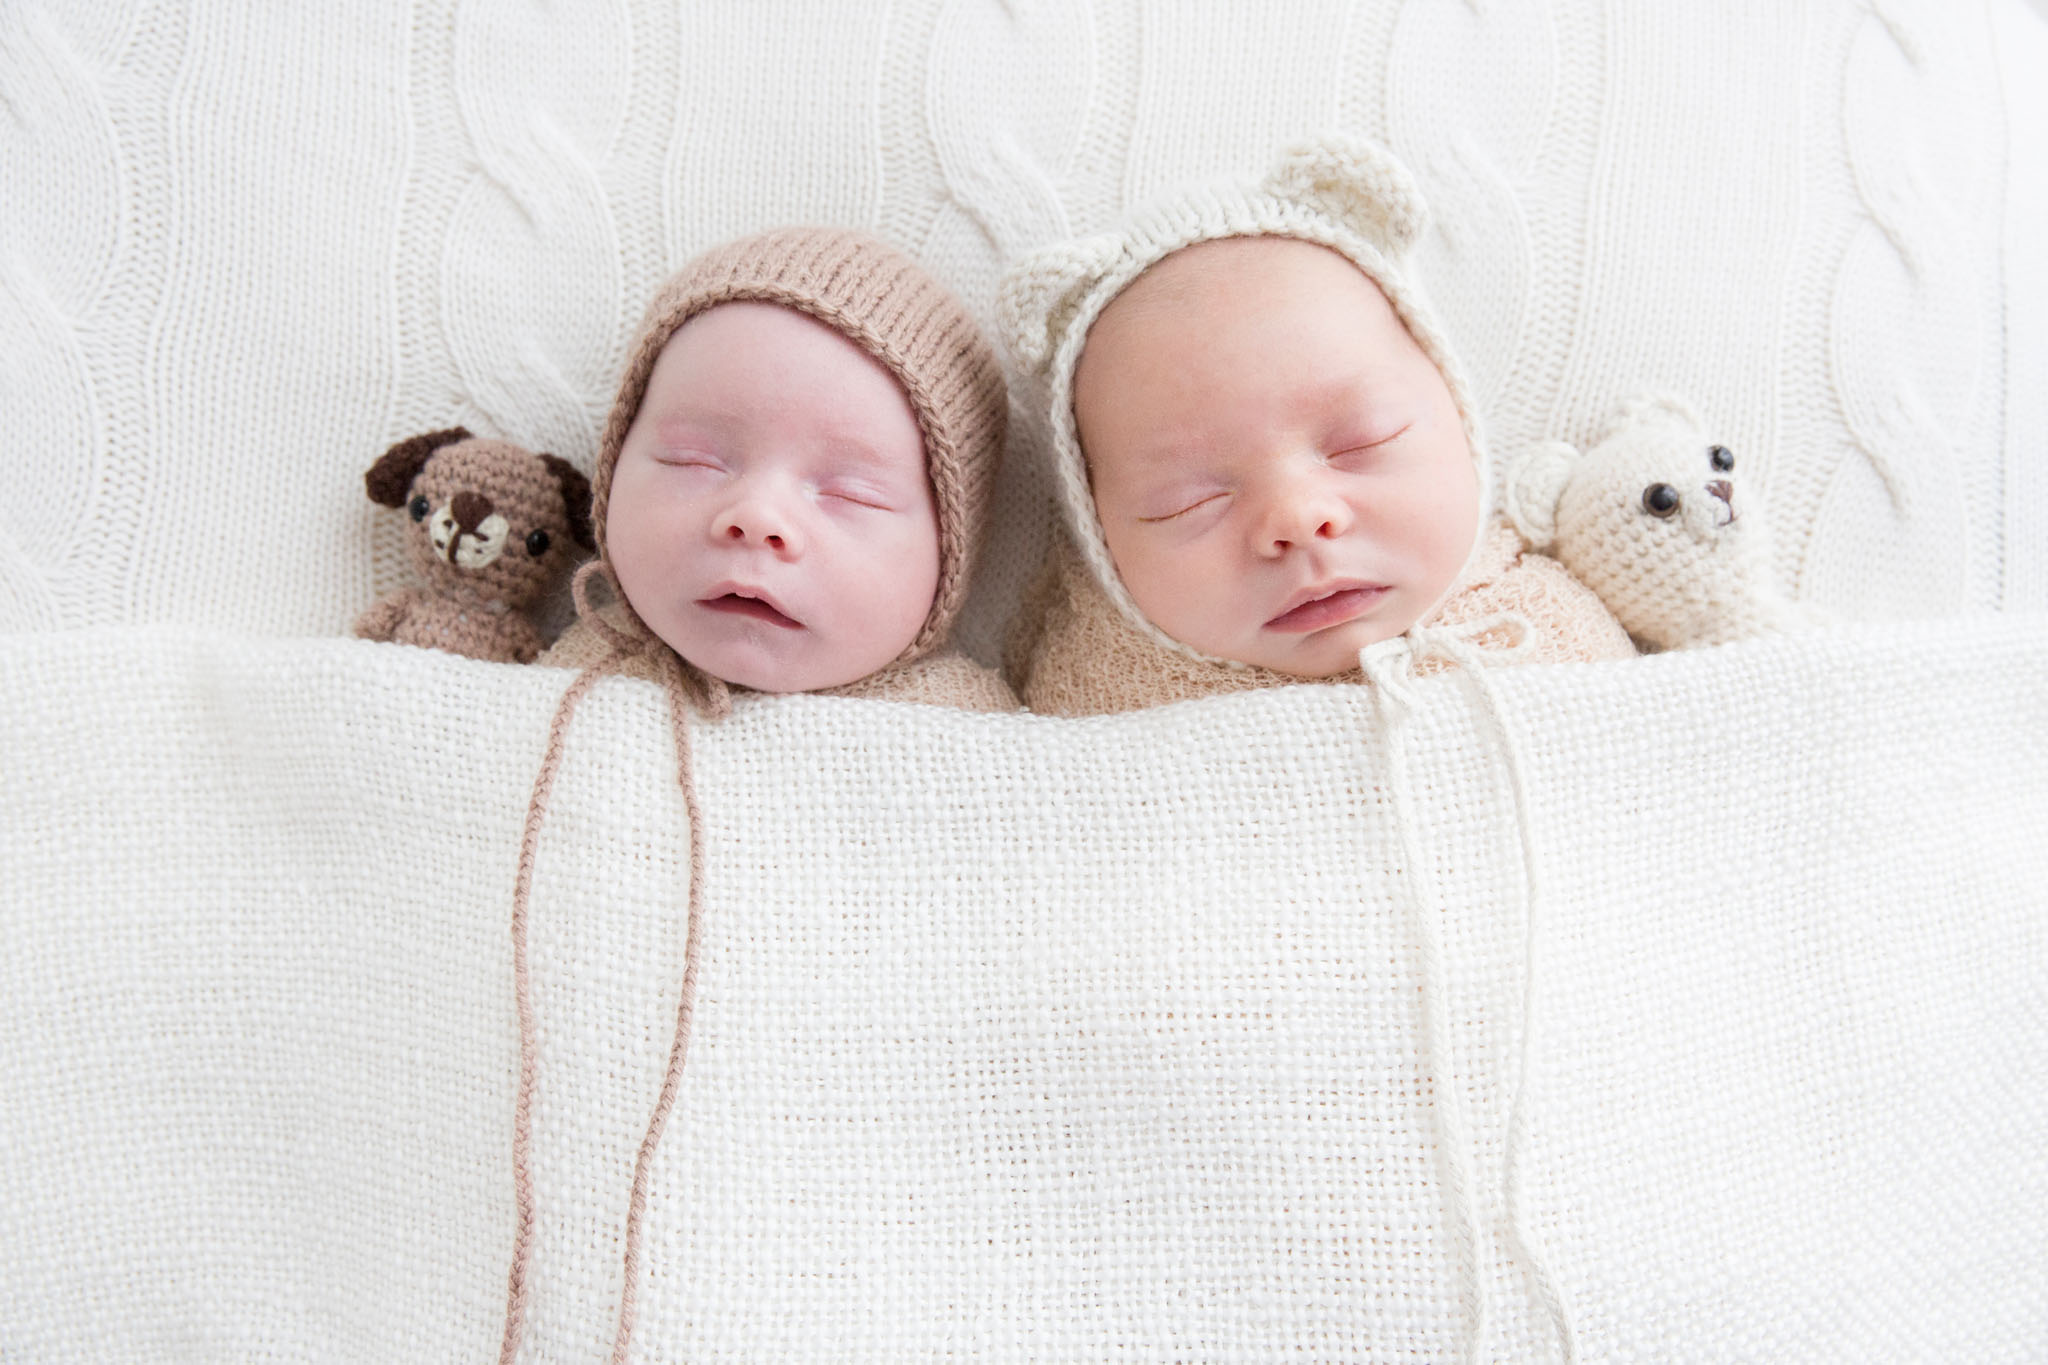 Newborn fraternal twin boys in bonnets with bears and bonnets taken at Canberra newborn photography studio - Mel Hill Photography.